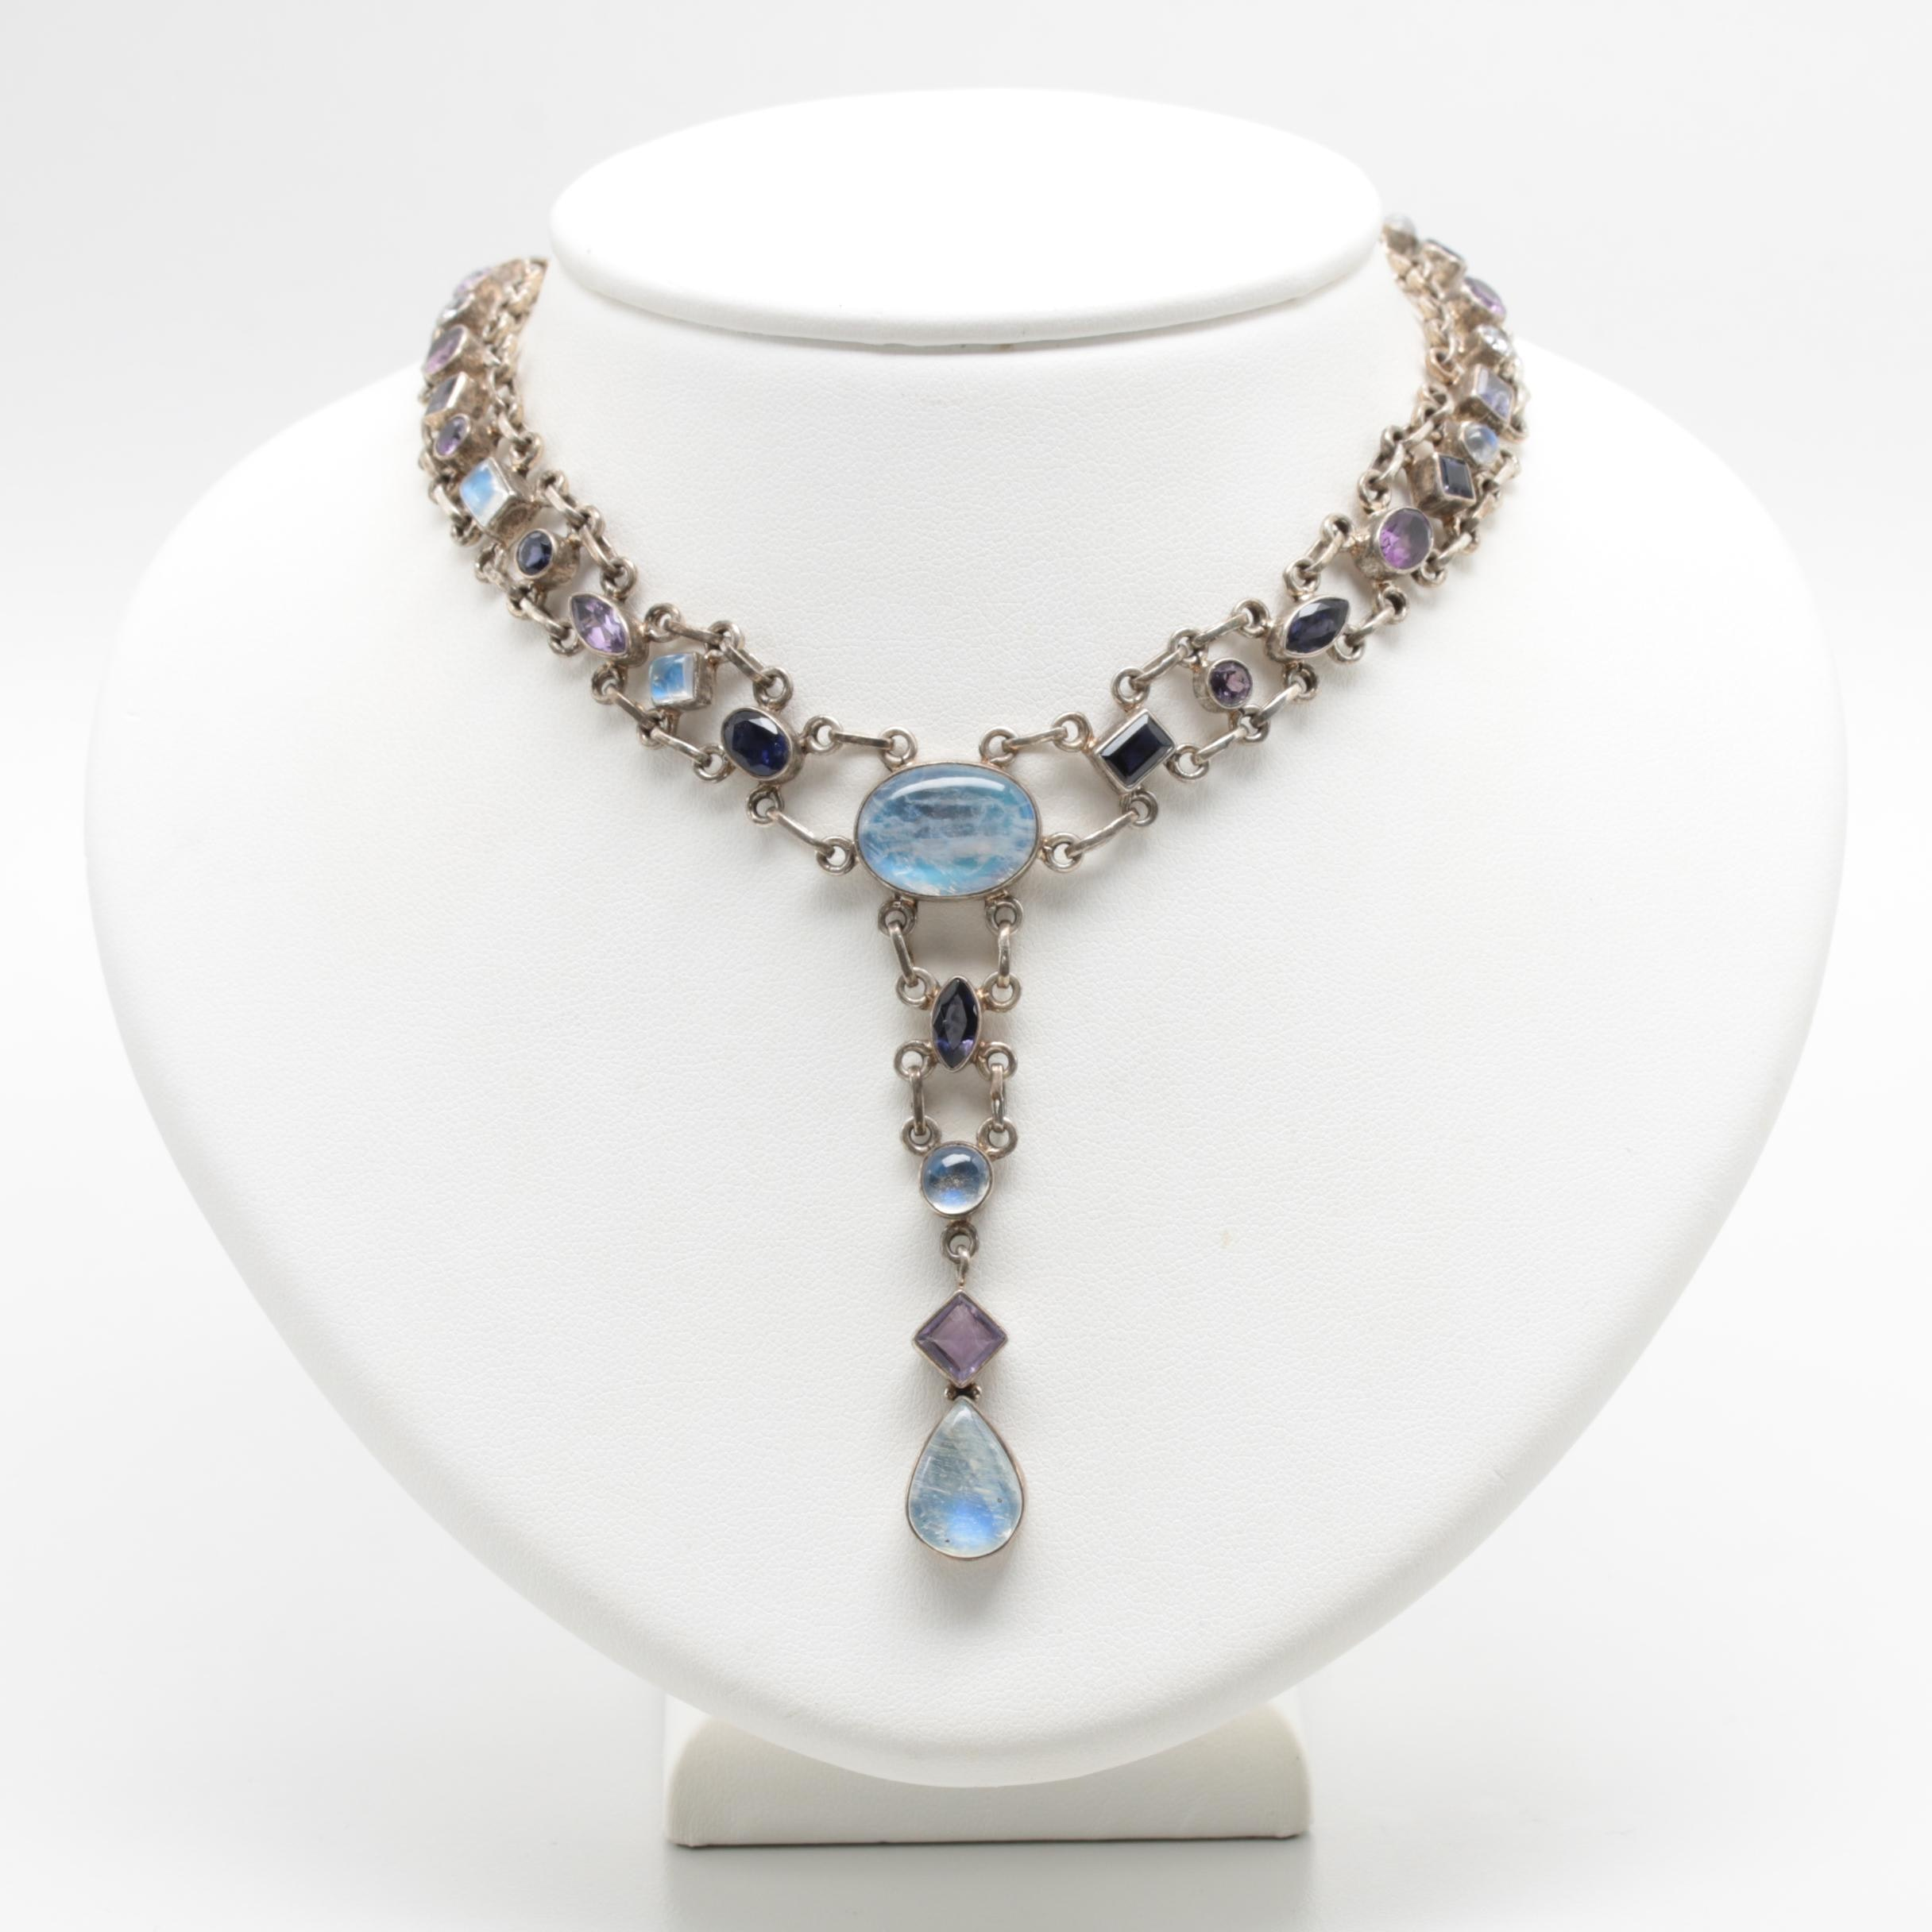 Sterling Silver Labradorite, Amethyst, Iolite, and Cubic Zirconia Necklace